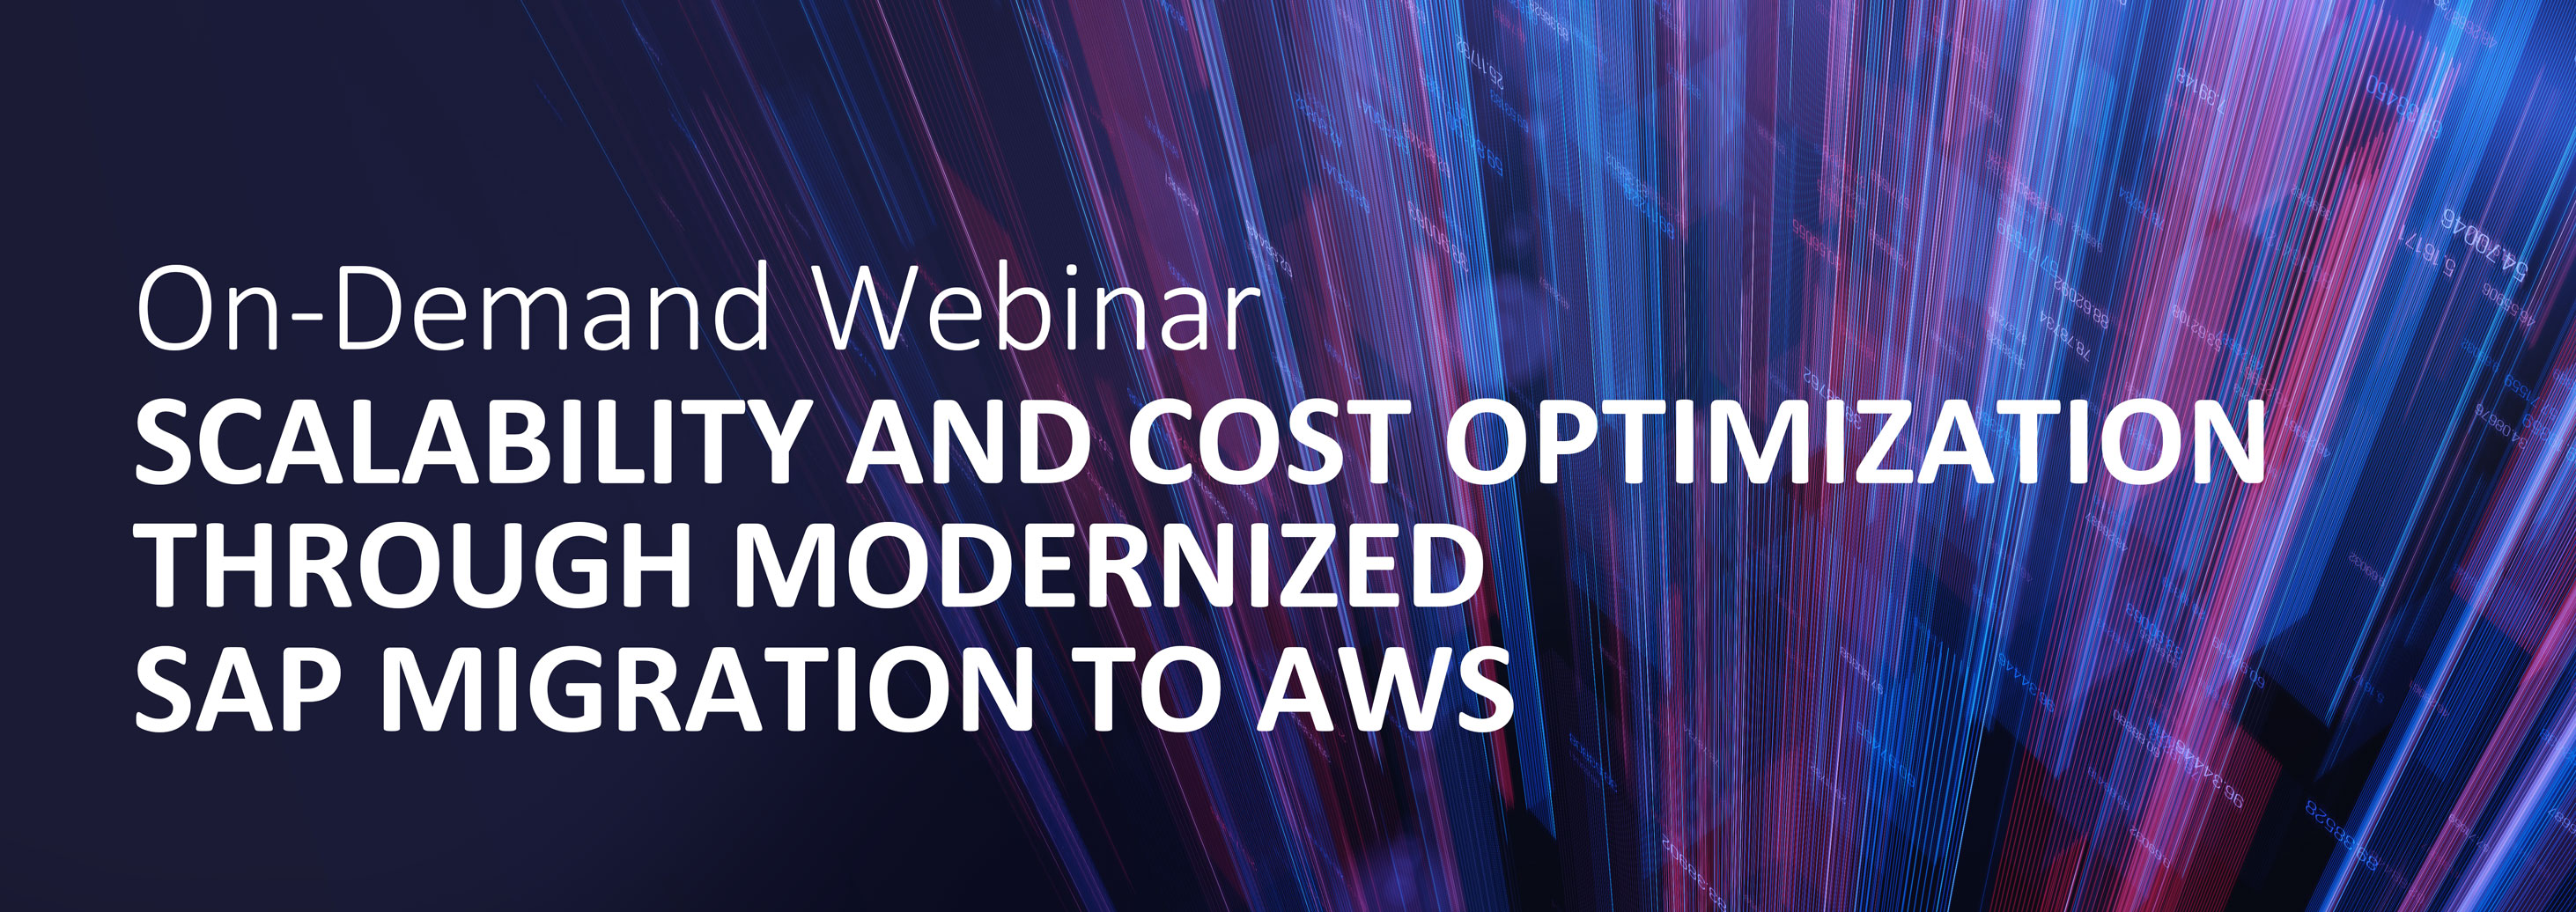 ON-DEMAND: SCALABILITY AND COST OPTIMIZATION THROUGH MODERNIZED SAP MIGRATION TO AWS